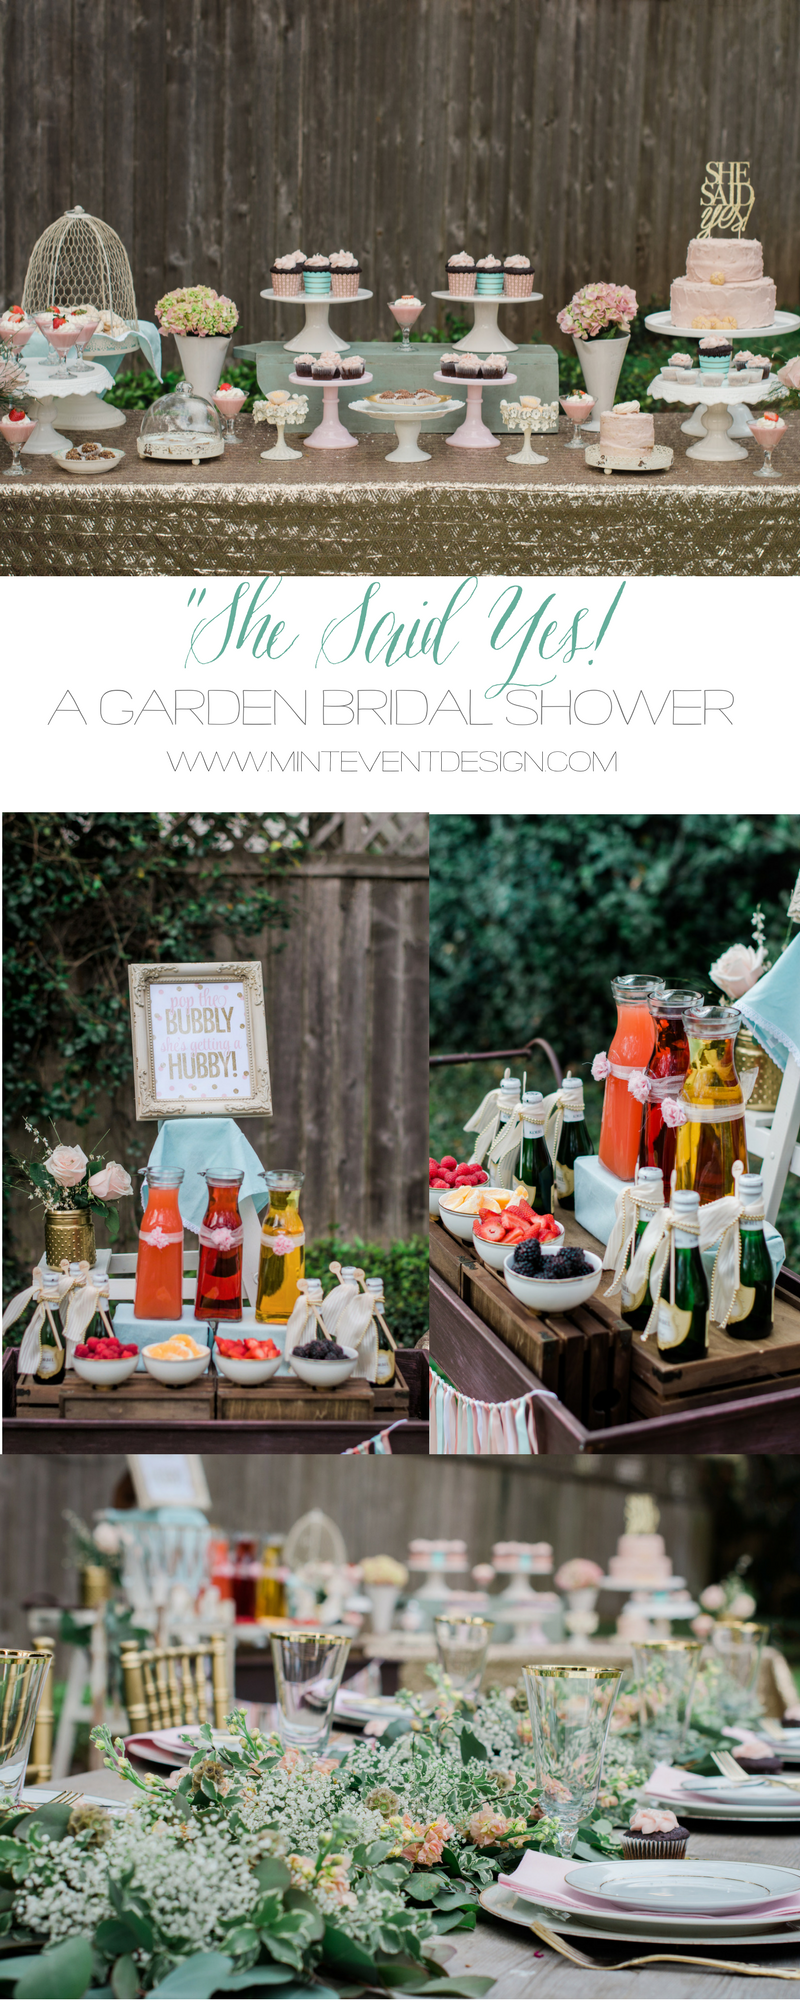 She said yes / Bridal Shower ideas / Shabby Chic Bridal Shower ideas / Mimosa Bar ideas / Bridal Shower Drink Station / Baby shower ideas / Shabby Chic Dessert table / Garden Shower party ideas / Bridal Shower decor ideas / Baby Shower decor ideas / Style By Carolina from MINT Event Design / www.minteventdesign.com